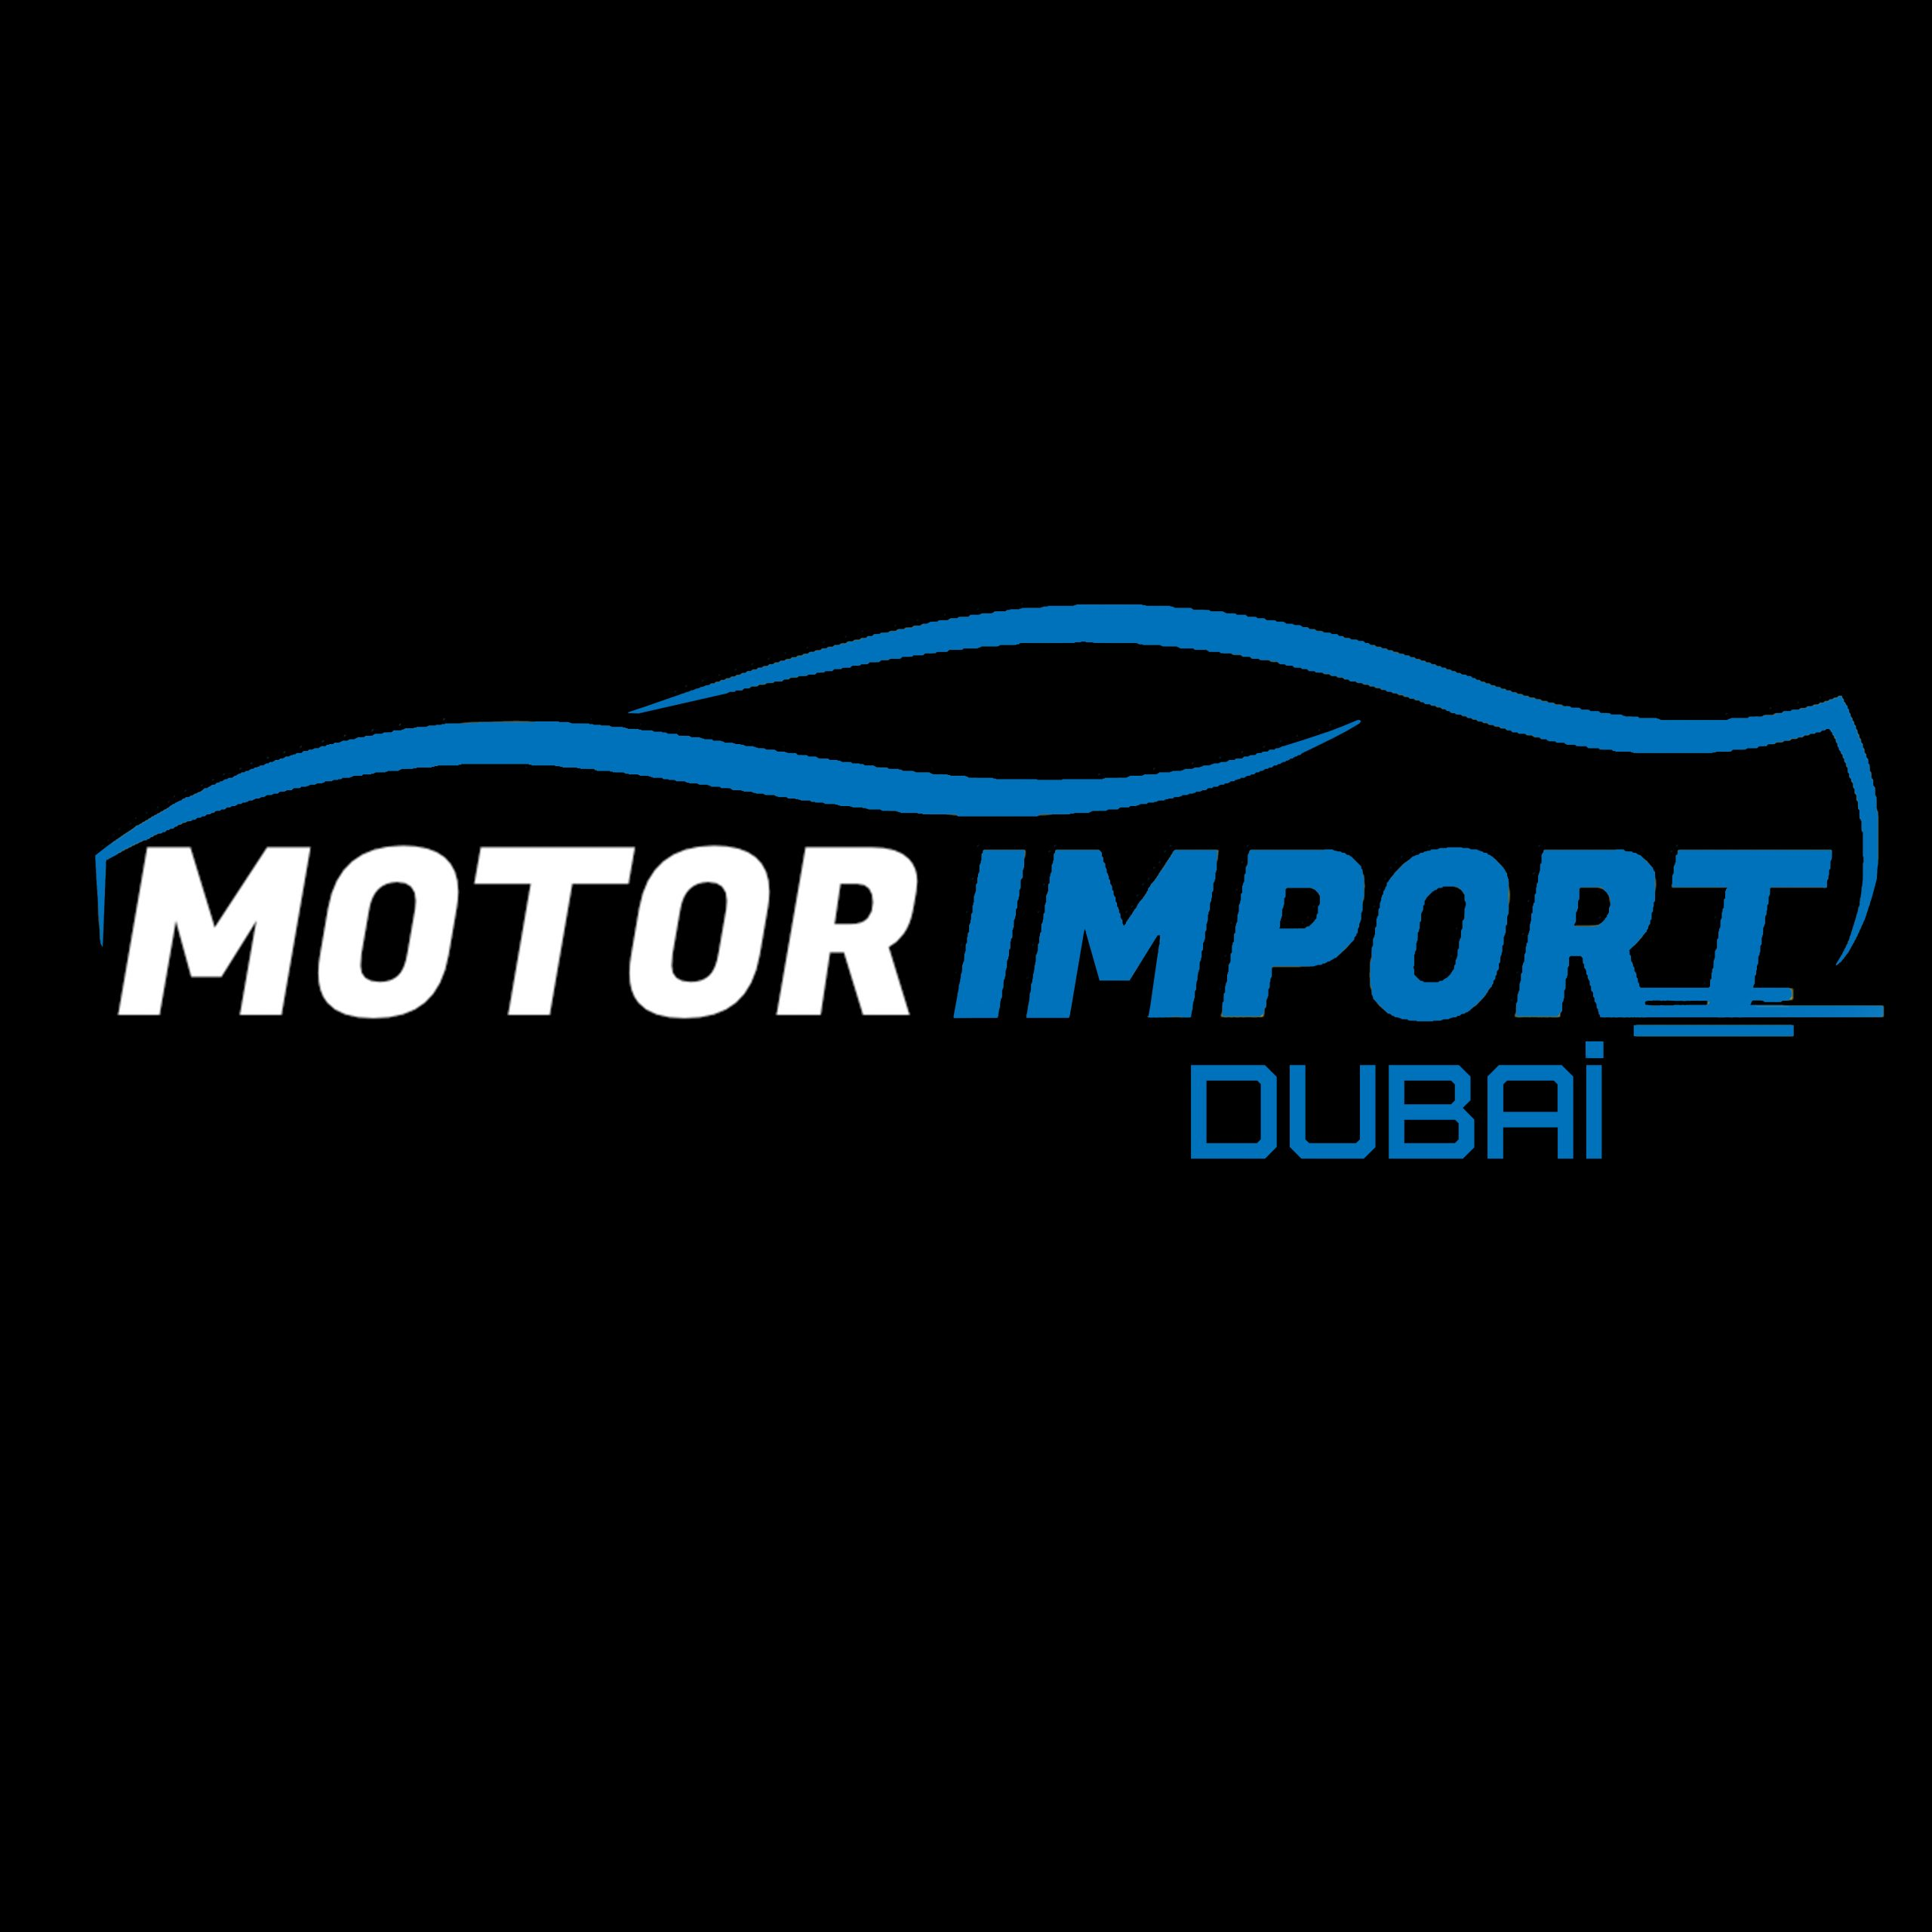 SQUARE EMPTYMOTOR IMPORT DUBAI scaled - BUICK DUBAI importation voiture Dubai BUICK importation vehicule emirats arabe unis motorimport